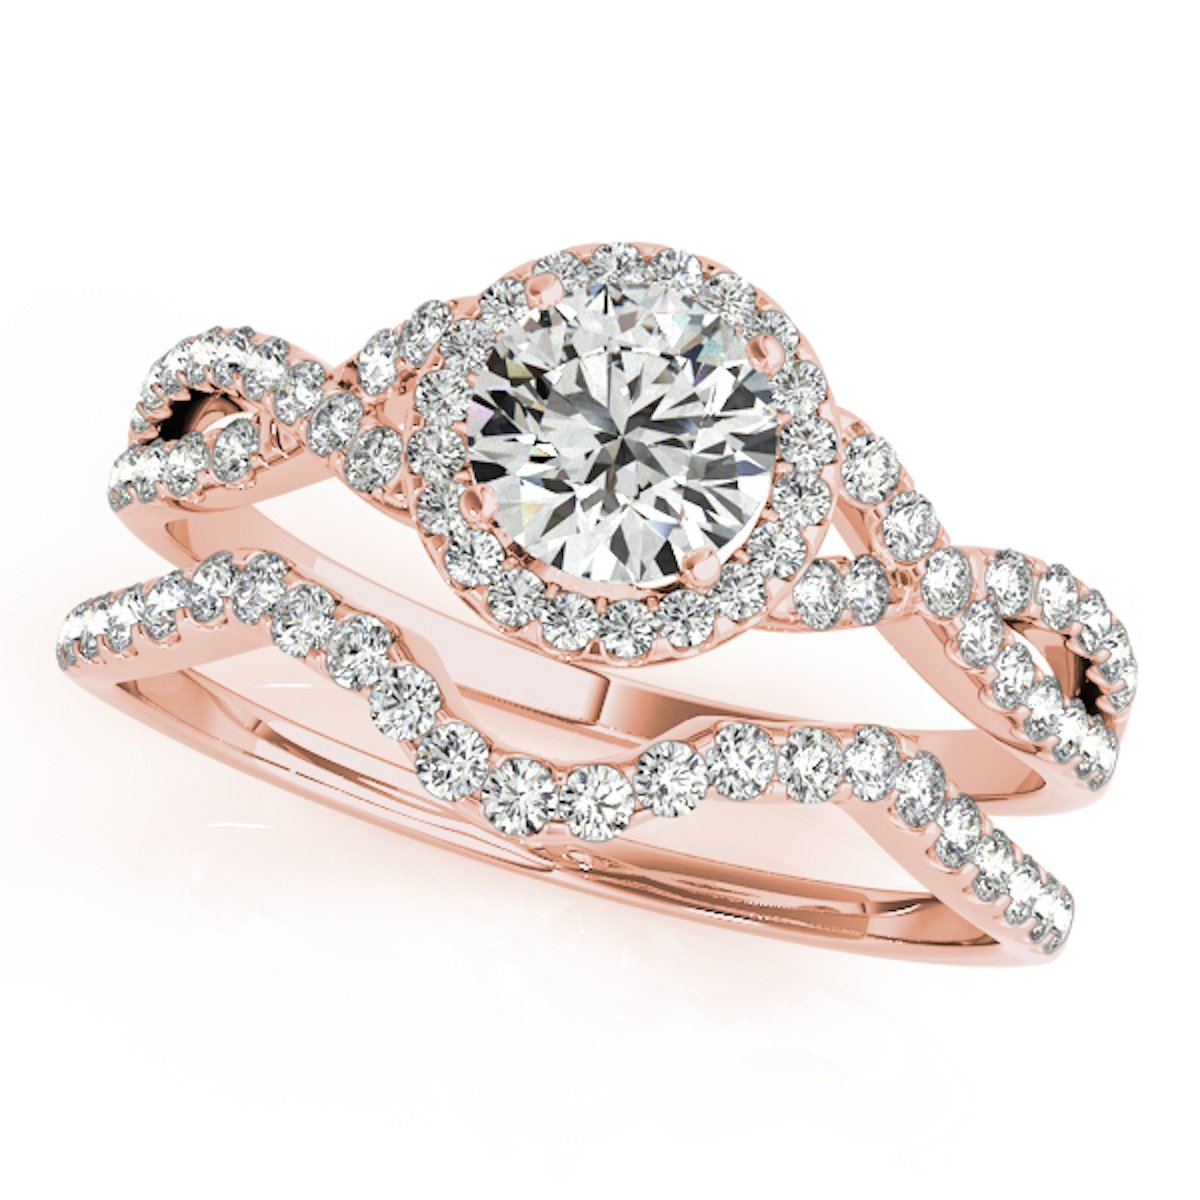 0.50 Carat Halo Daimond Engagement Bridal Ring Set 14K Solid Rose Gold